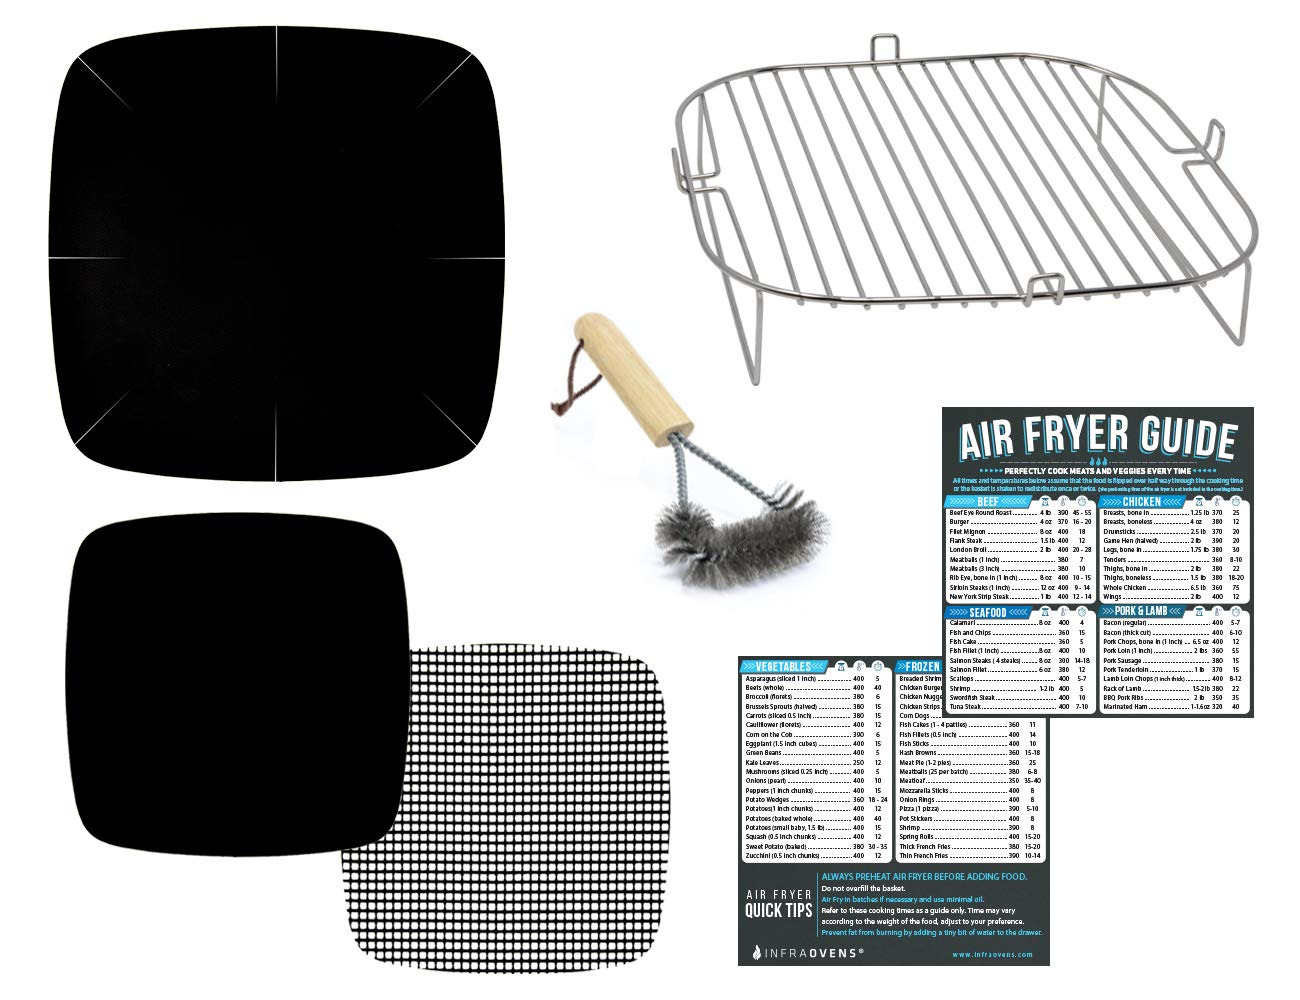 Air Fryer Accessories Kit for 9 x 9 inch basket | Compatible with NuWave, GoWise, Innsky, Tidylife, Sarki + More | XL to XXL Airfryer Accessory Rack Set of 7 with Grill Brush | 10QT – 11.6QT – 12QT